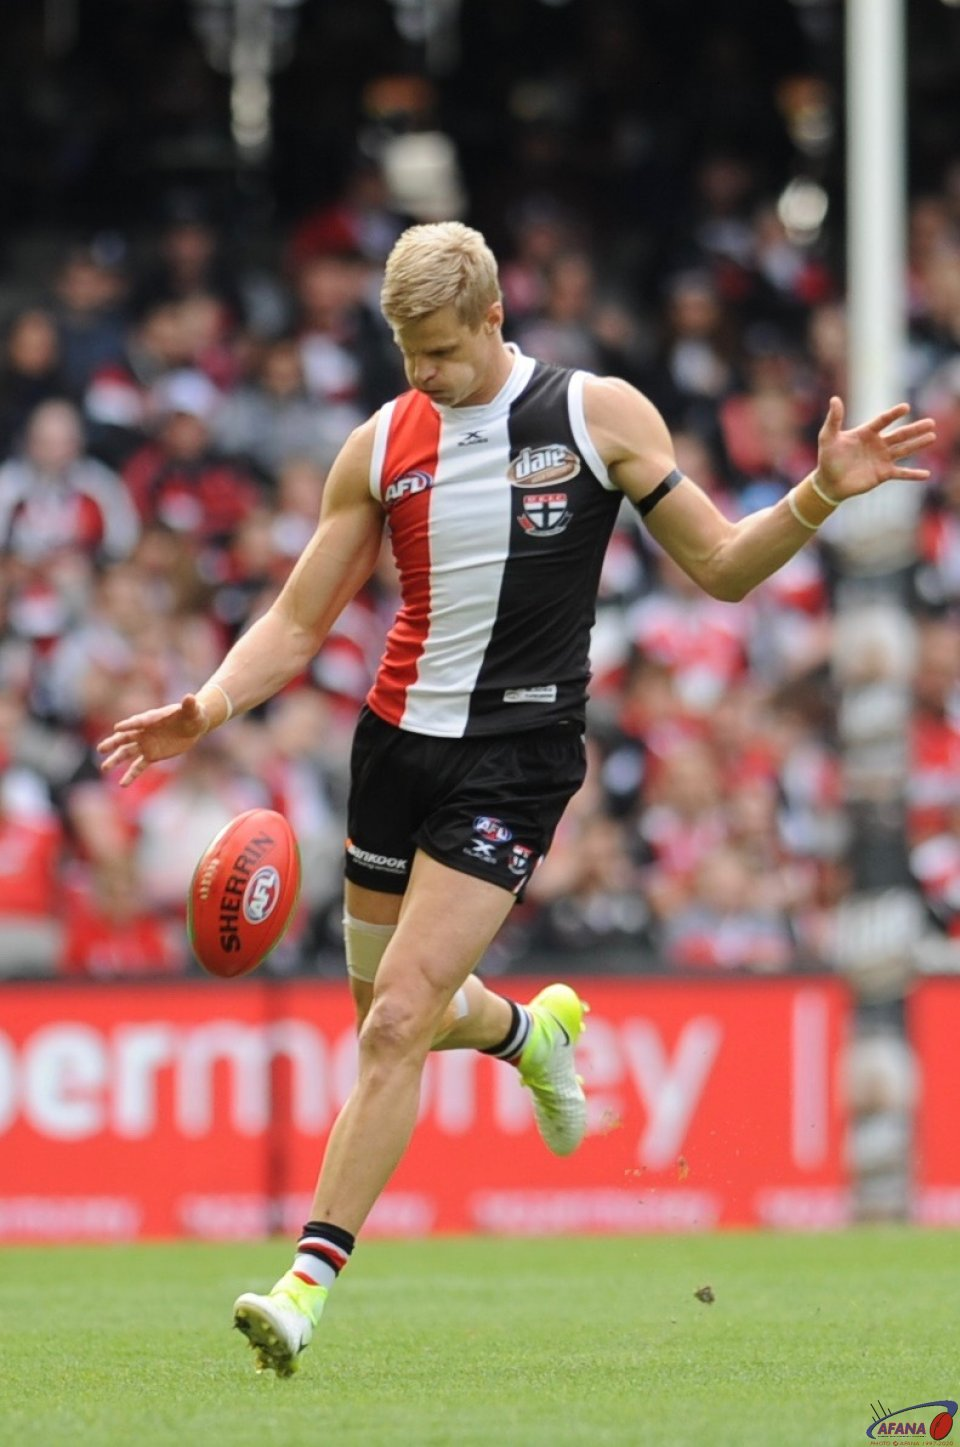 Nick Reiwoldt centres the ball